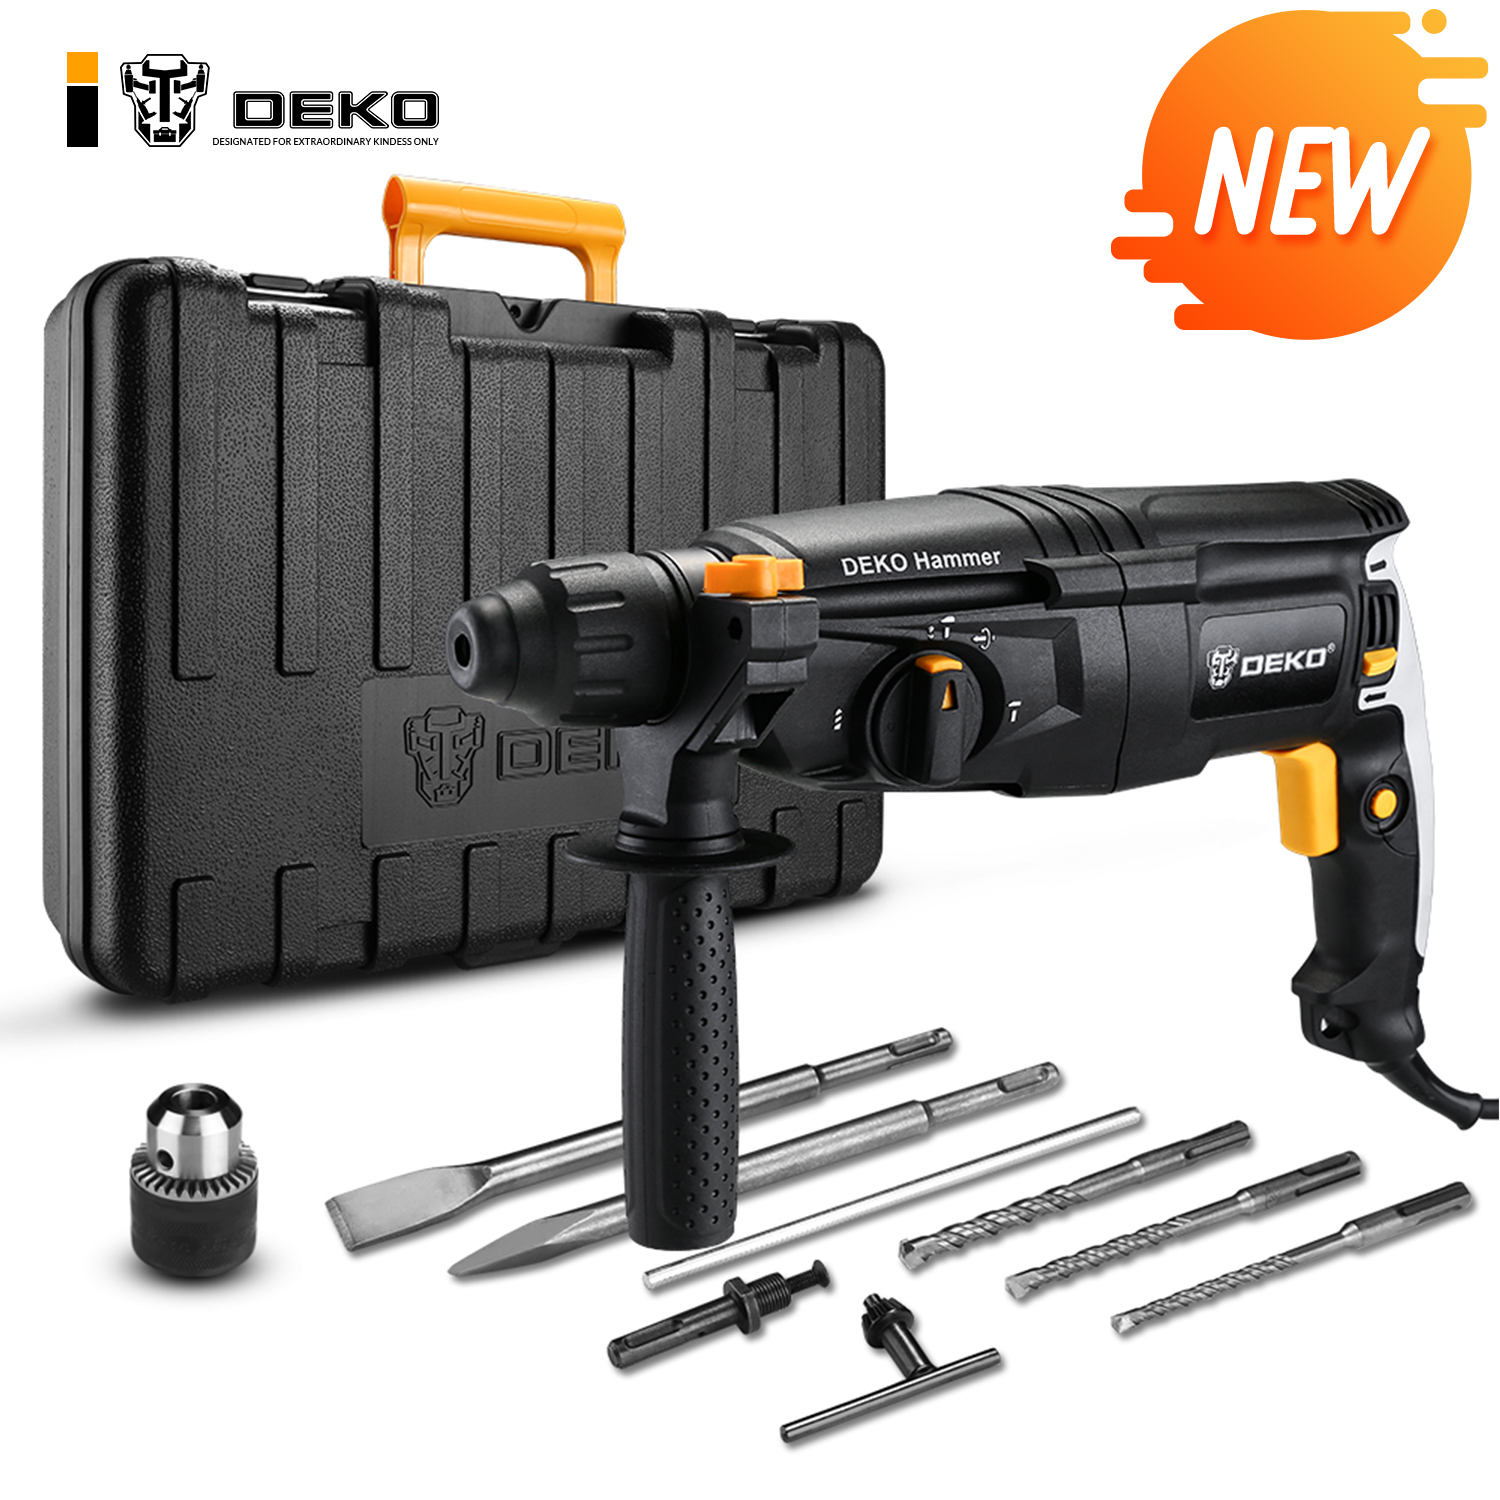 DEKO GJ181 220V 26mm 4 Functions AC Electric Rotary Hammer with BMC and Accessories Impact Drill Power Drill Electric Drill(China)